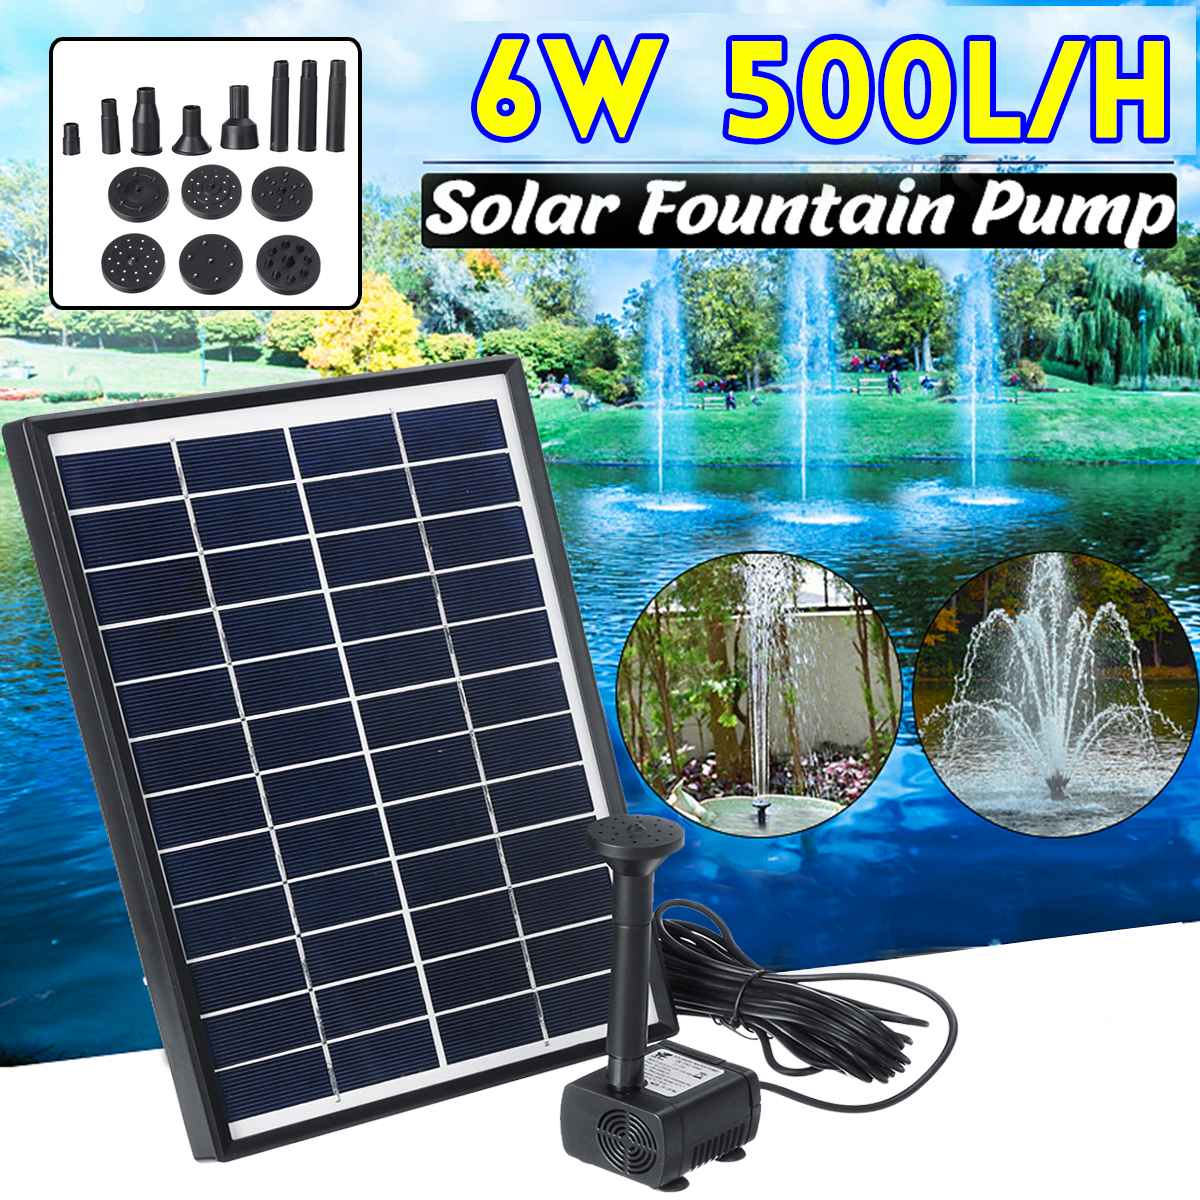 12V 500L//H 5W Solar Power Fountain Garden Pond Water Feature Submersible Pumps